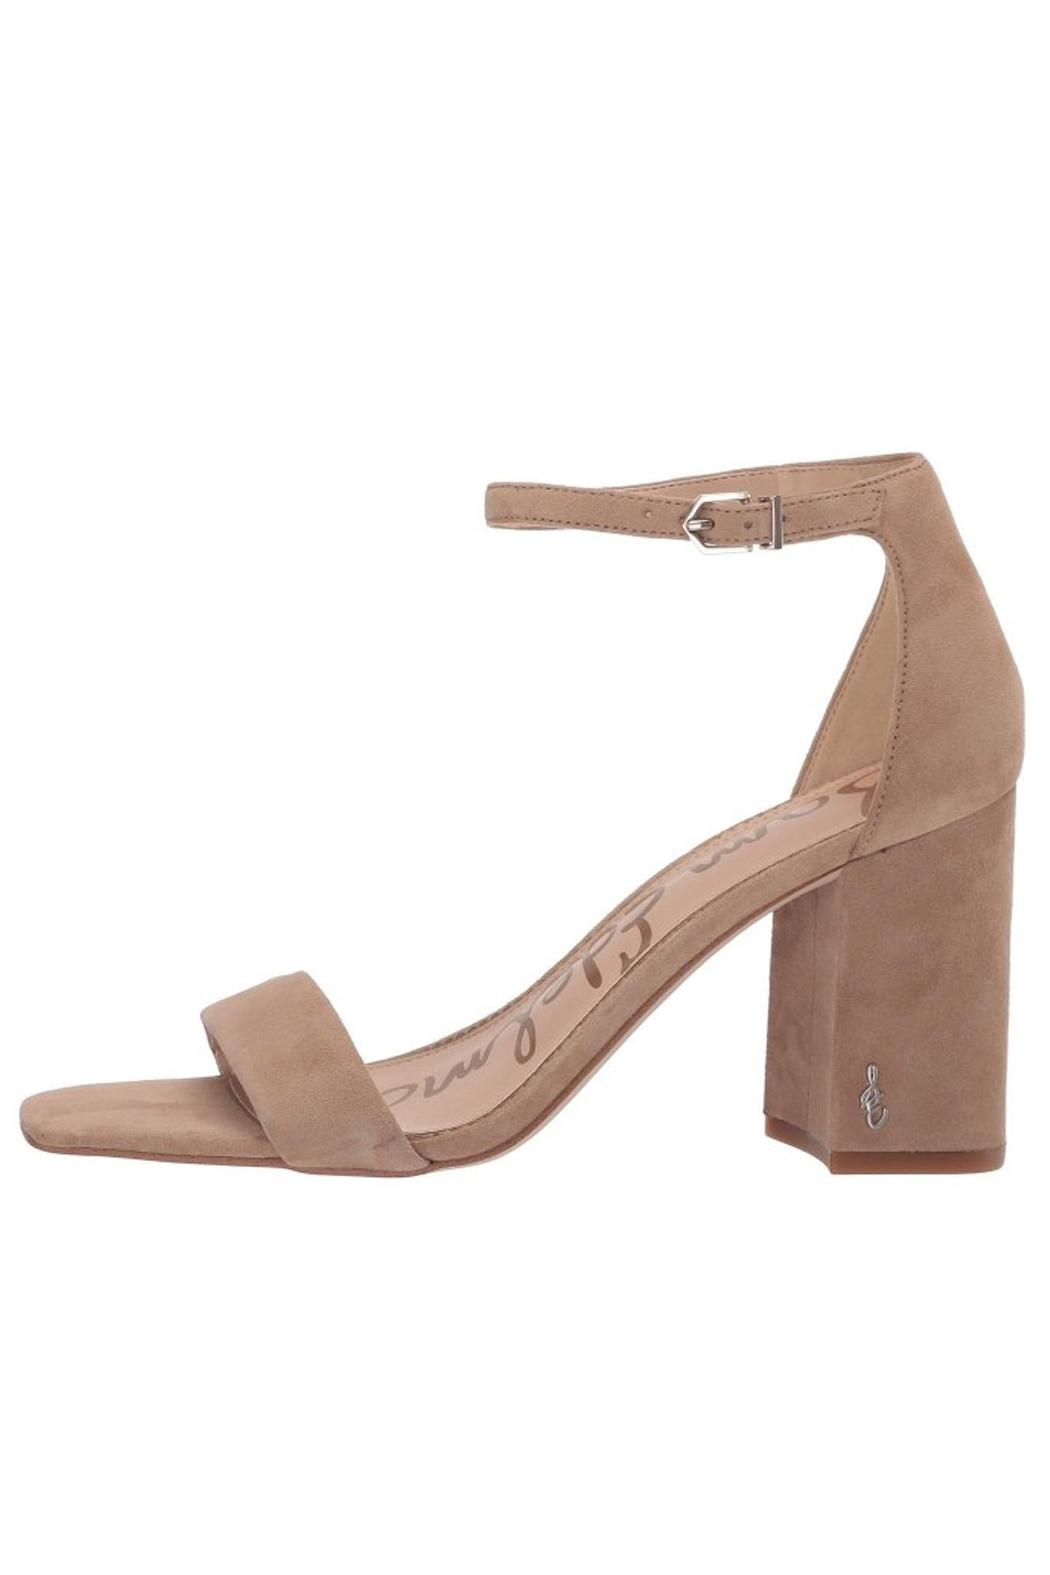 Sam Edelman Basic Nude Pumps - Main Image